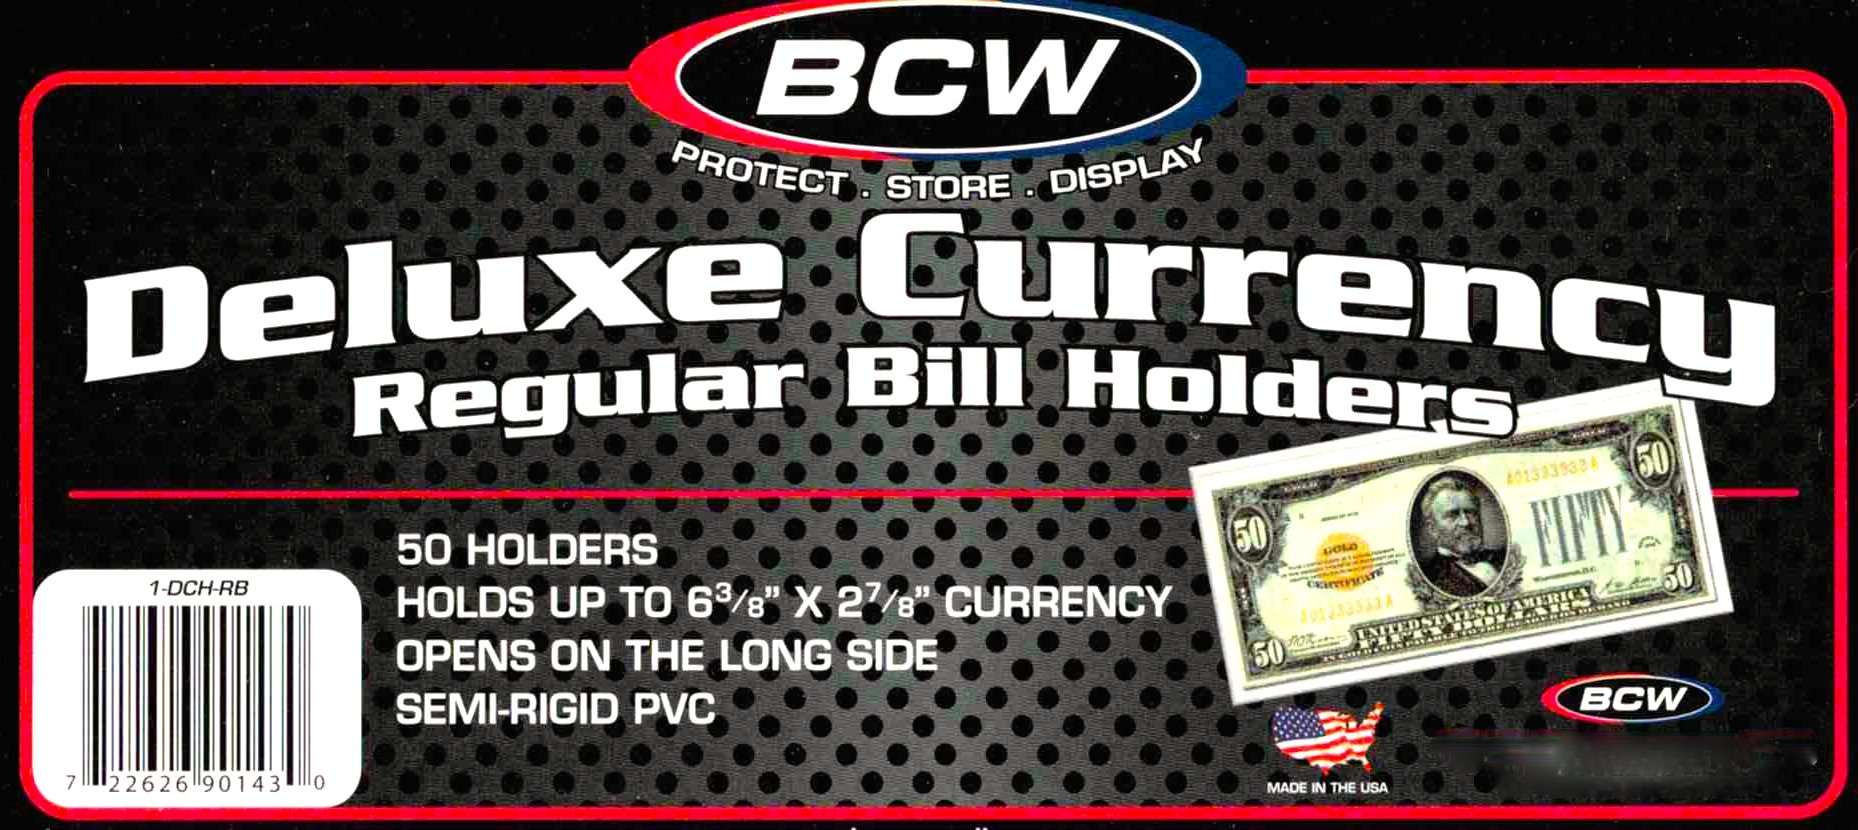 300 Deluxe Semi Rigid Regular Bill Holders - Mailers by BCW